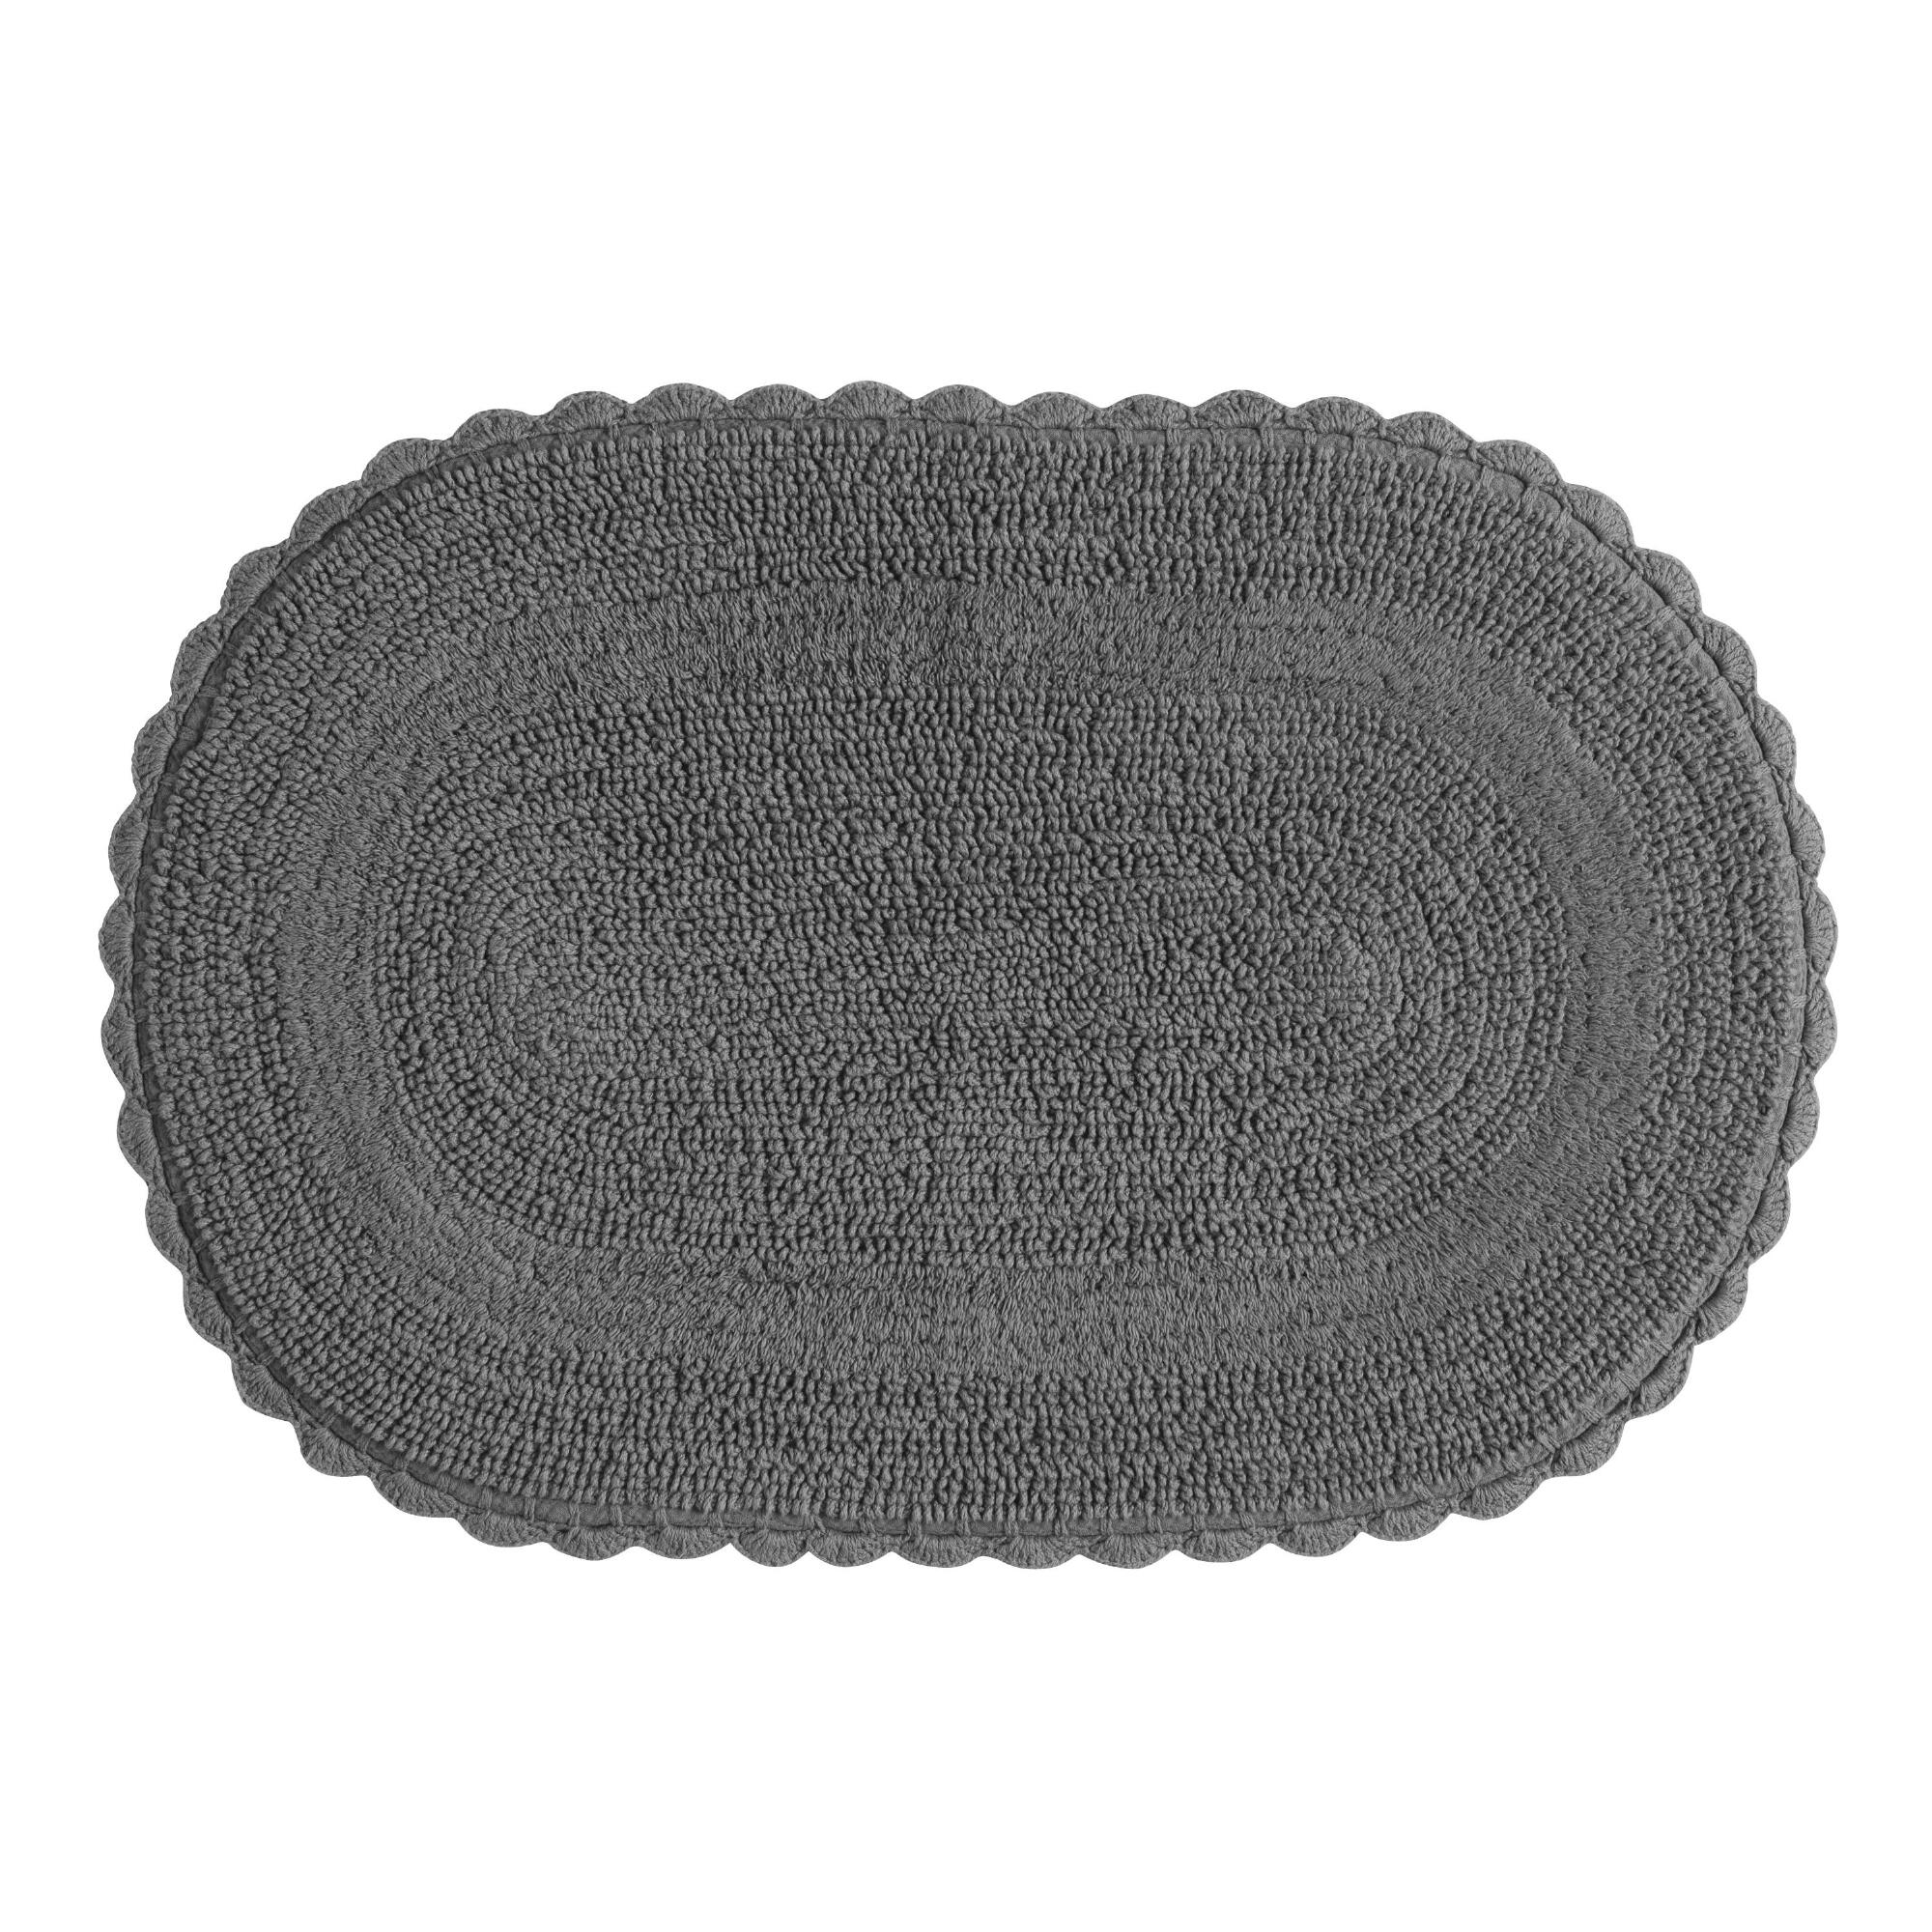 Very large bath rugs search - Gray Oval Crochet Bath Mat